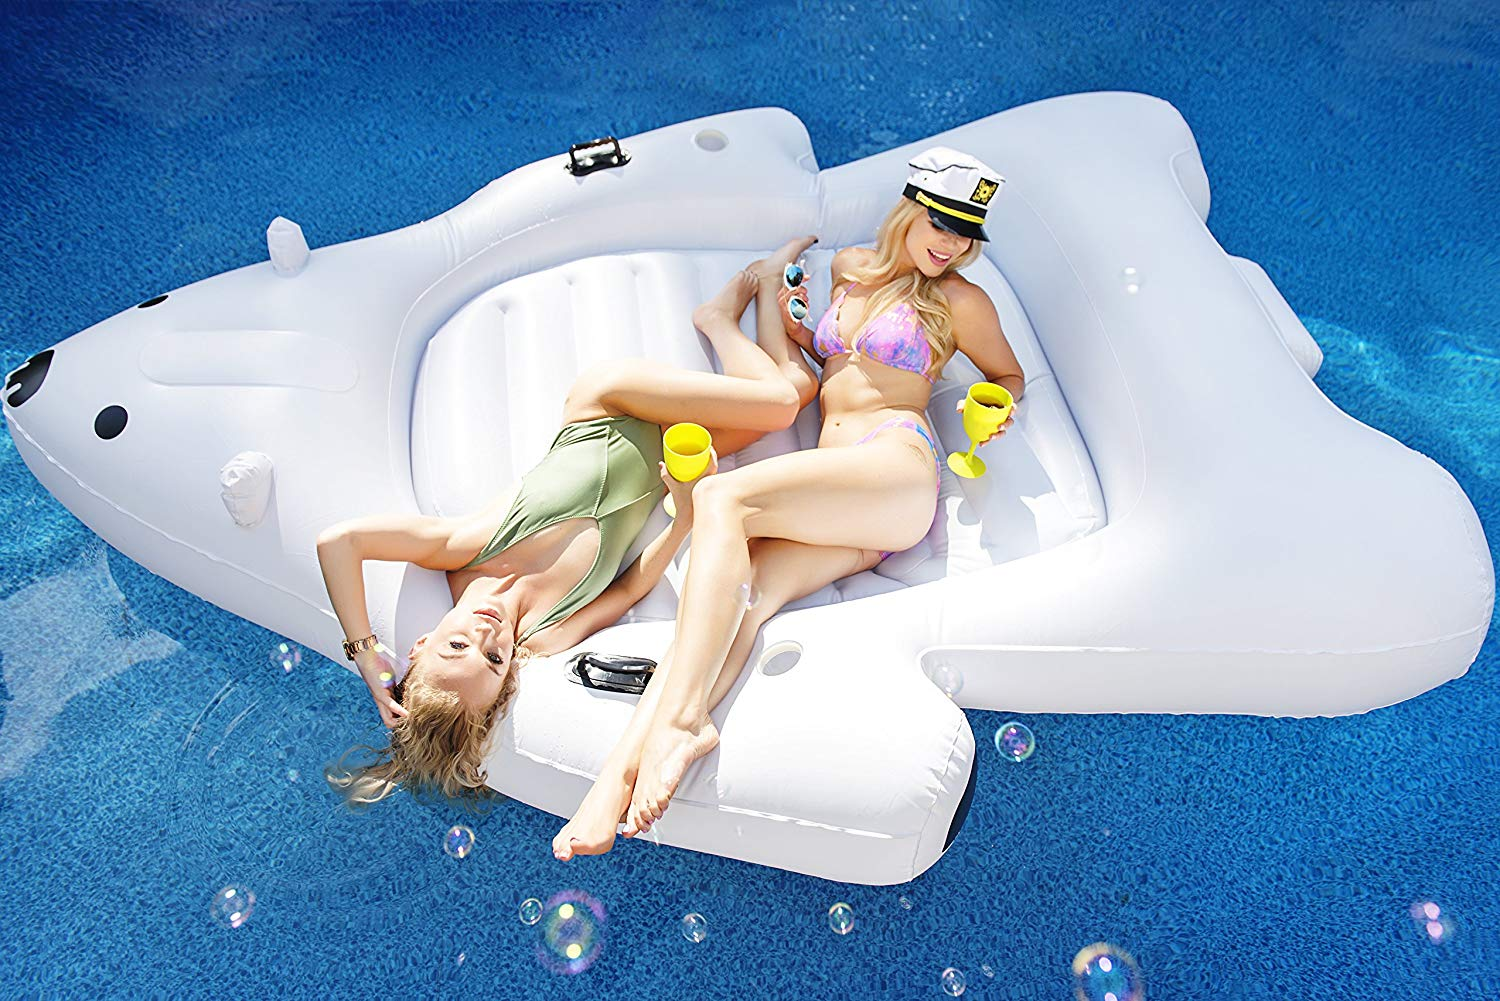 Giant Polar Bear Pool Float | Swim Lounger | Floating Island Raft with Cupholders by Captain Floaty